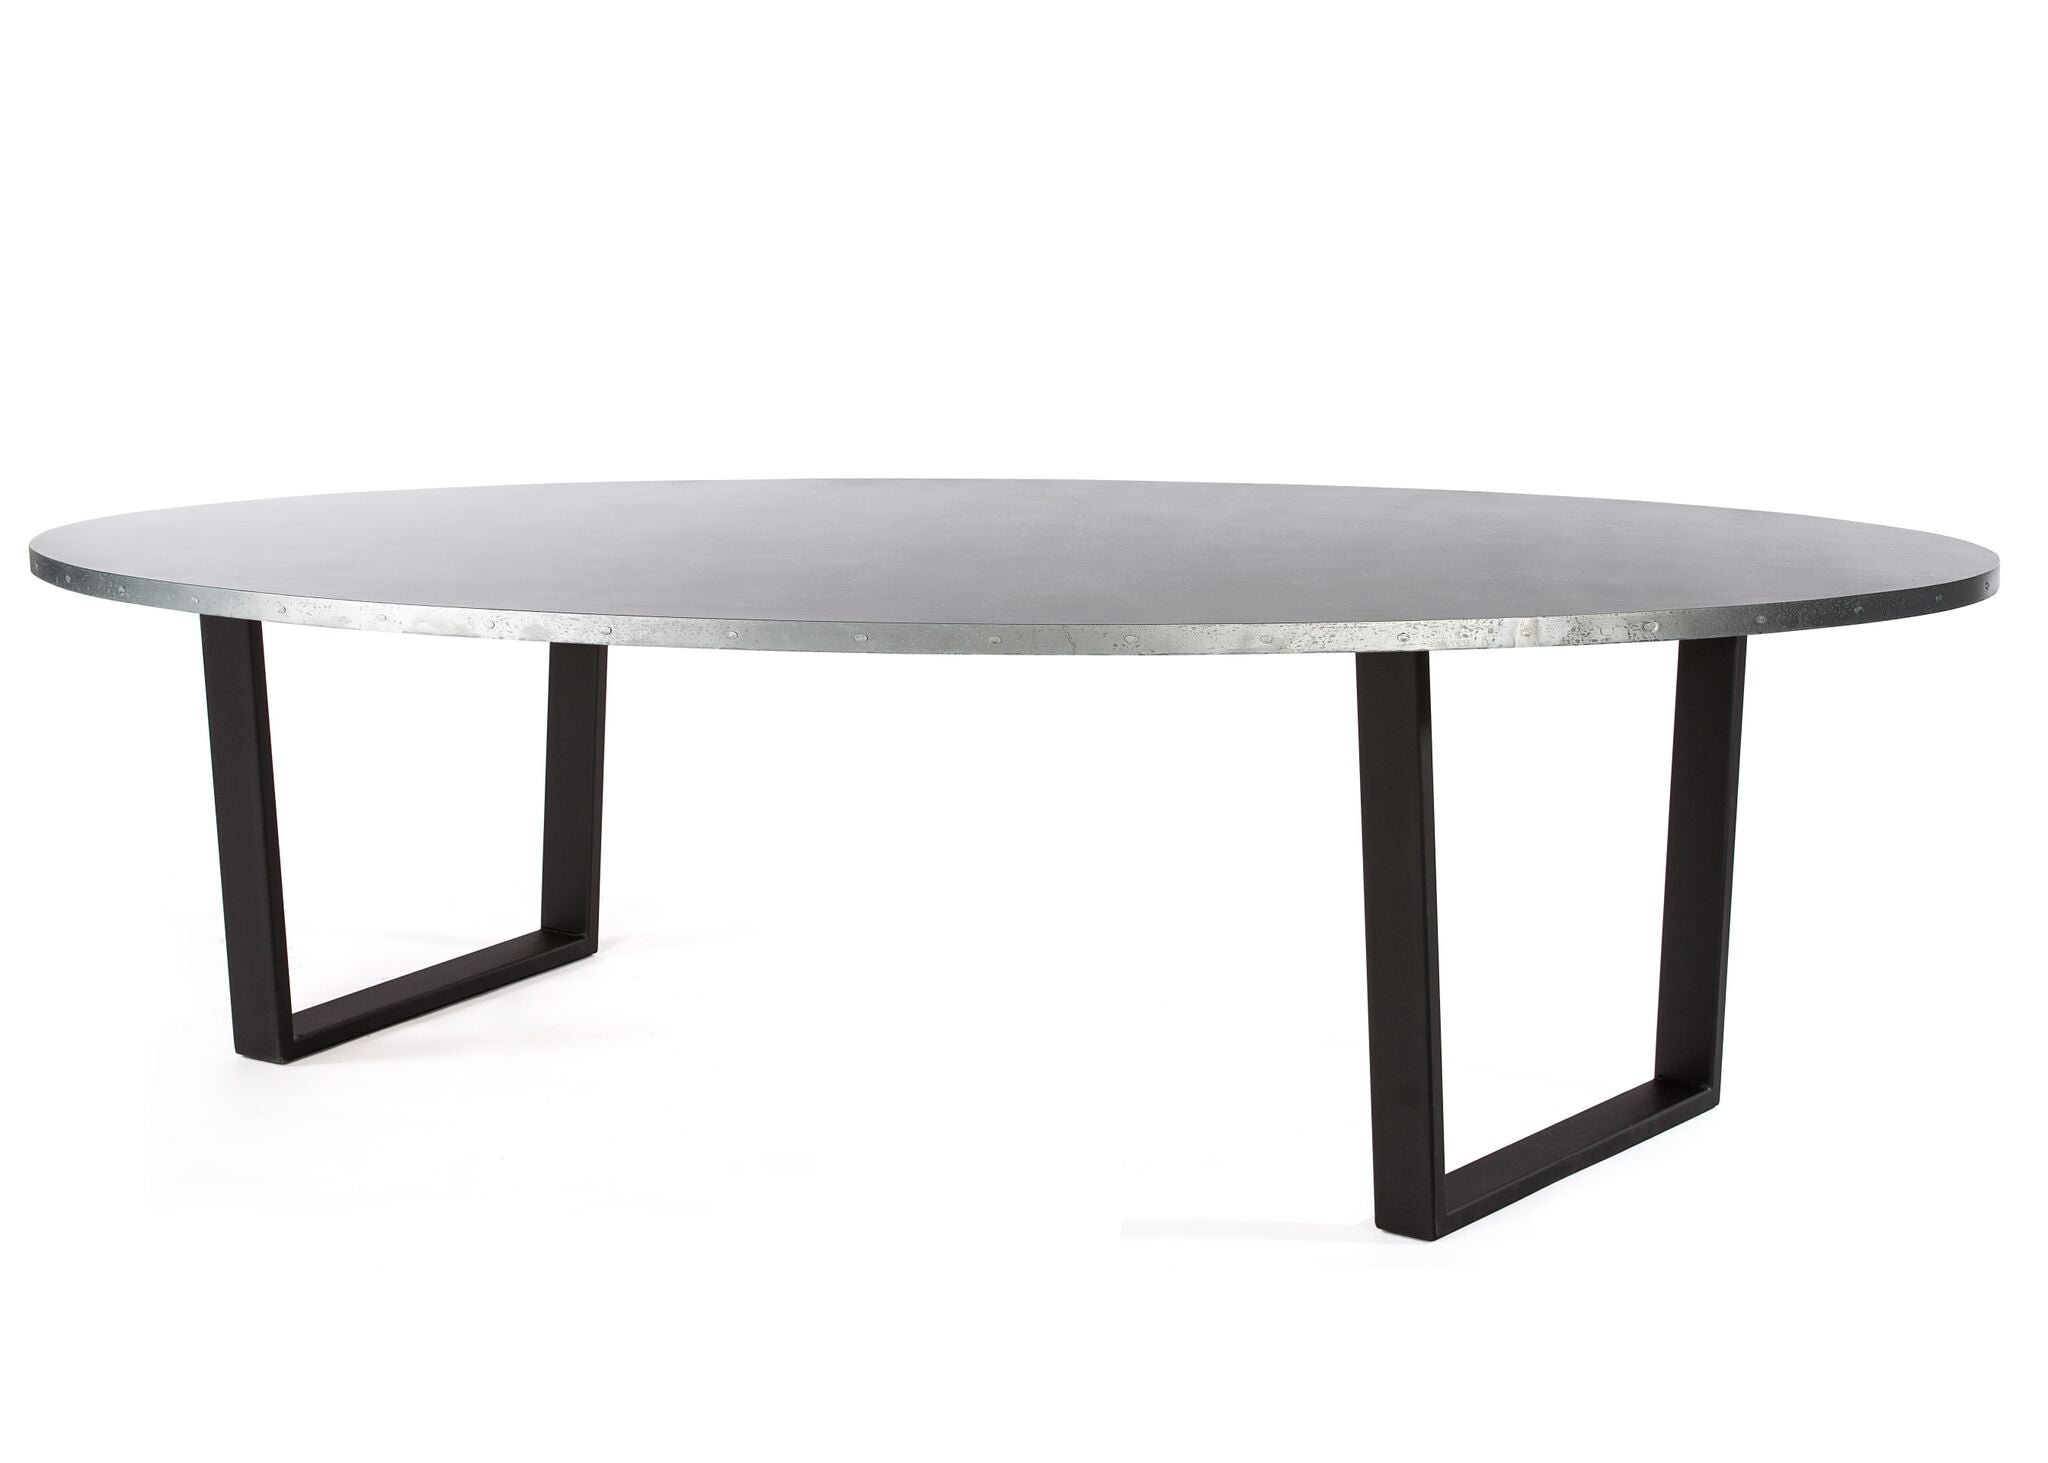 "Zinc Oval Tables | Trenton Table | CLASSIC | Black on Steel | CUSTOM SIZE L 72 W 37 H 30 | 1.5"" Standard 